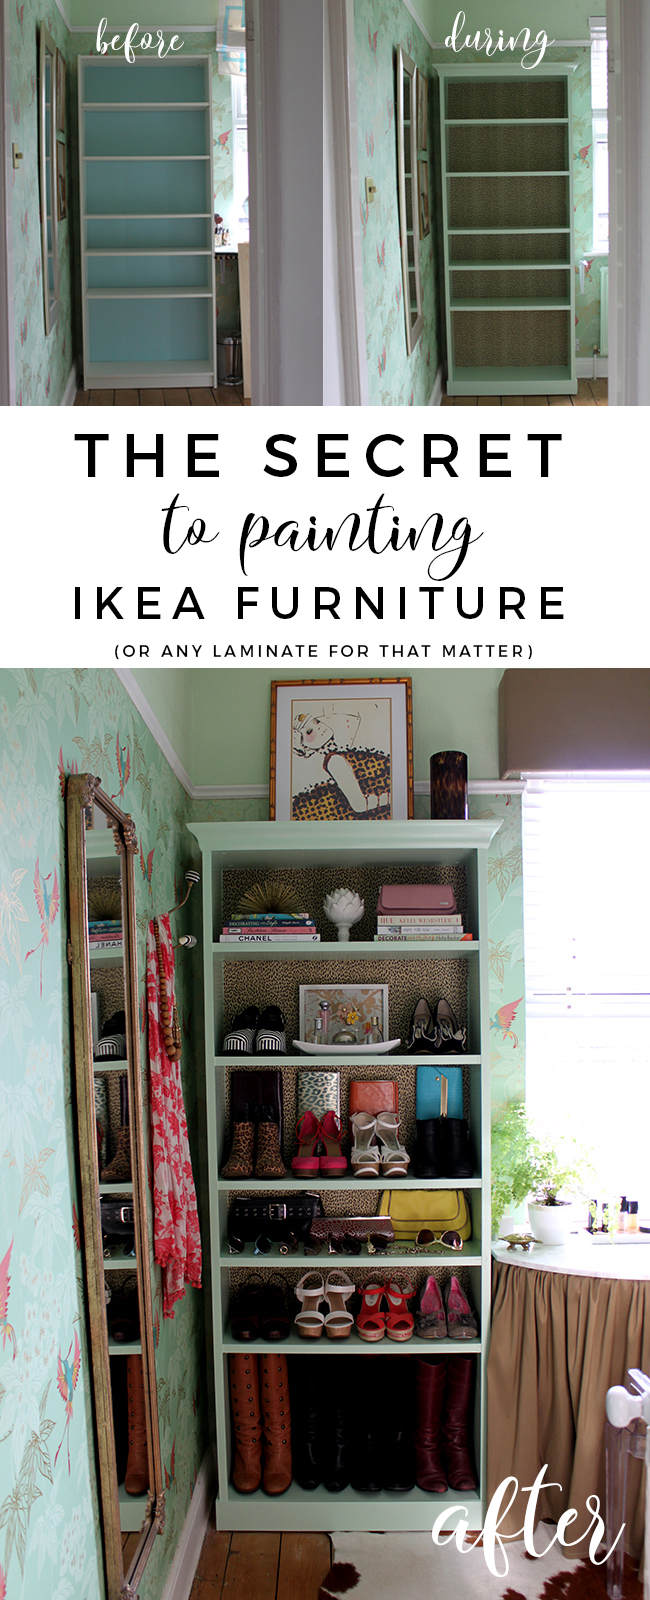 The Secret To Painting Ikea Furniture